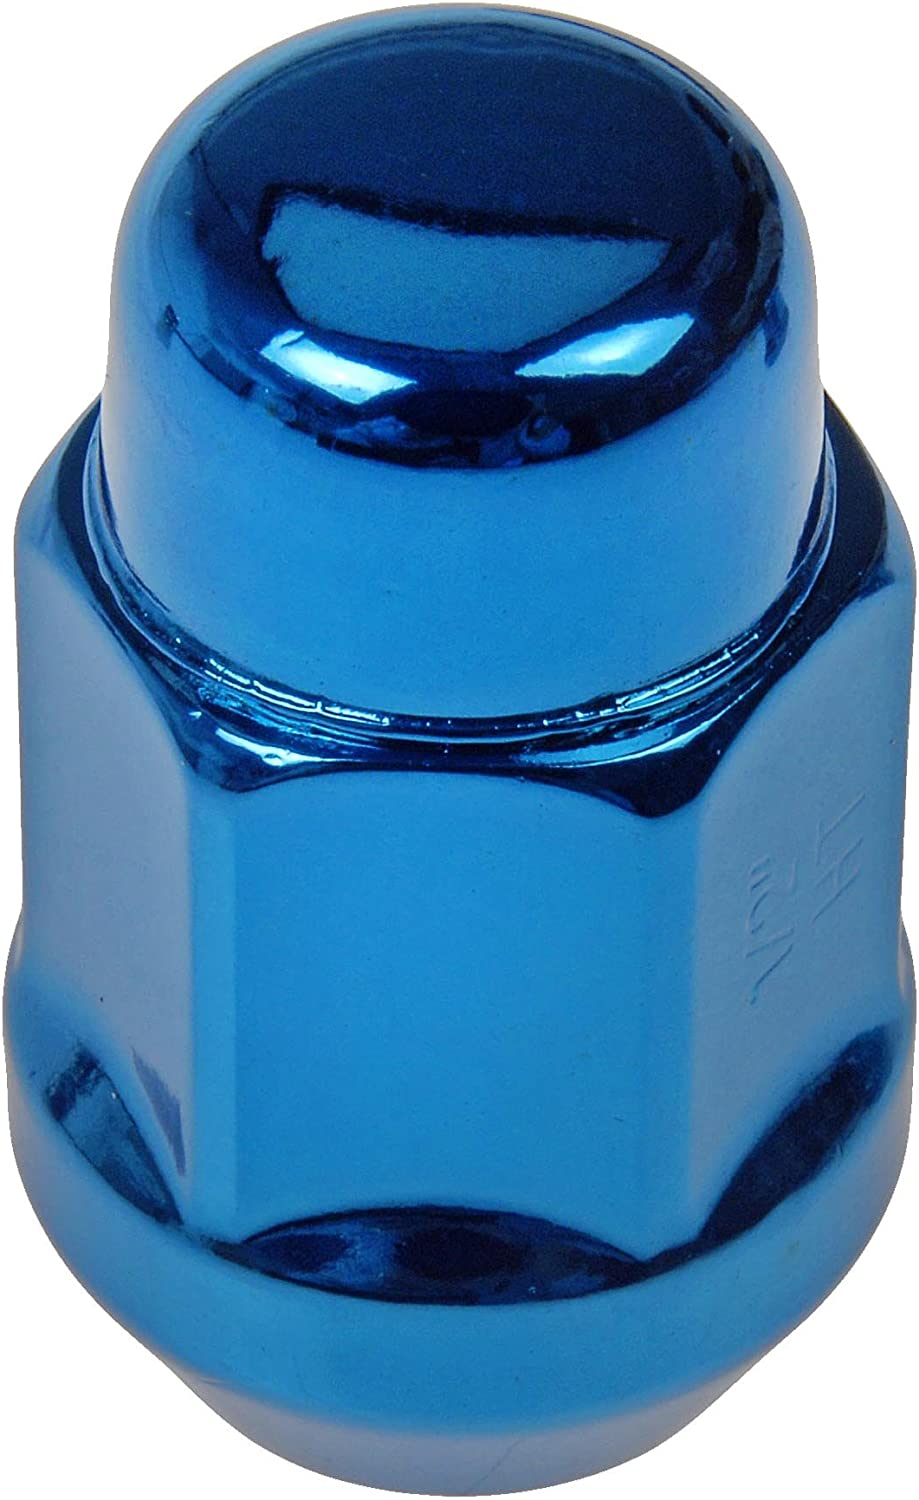 Dorman Japan's largest assortment 711-235D Pack of 16 Blue Lock Nuts and Wheel 4 with Selling